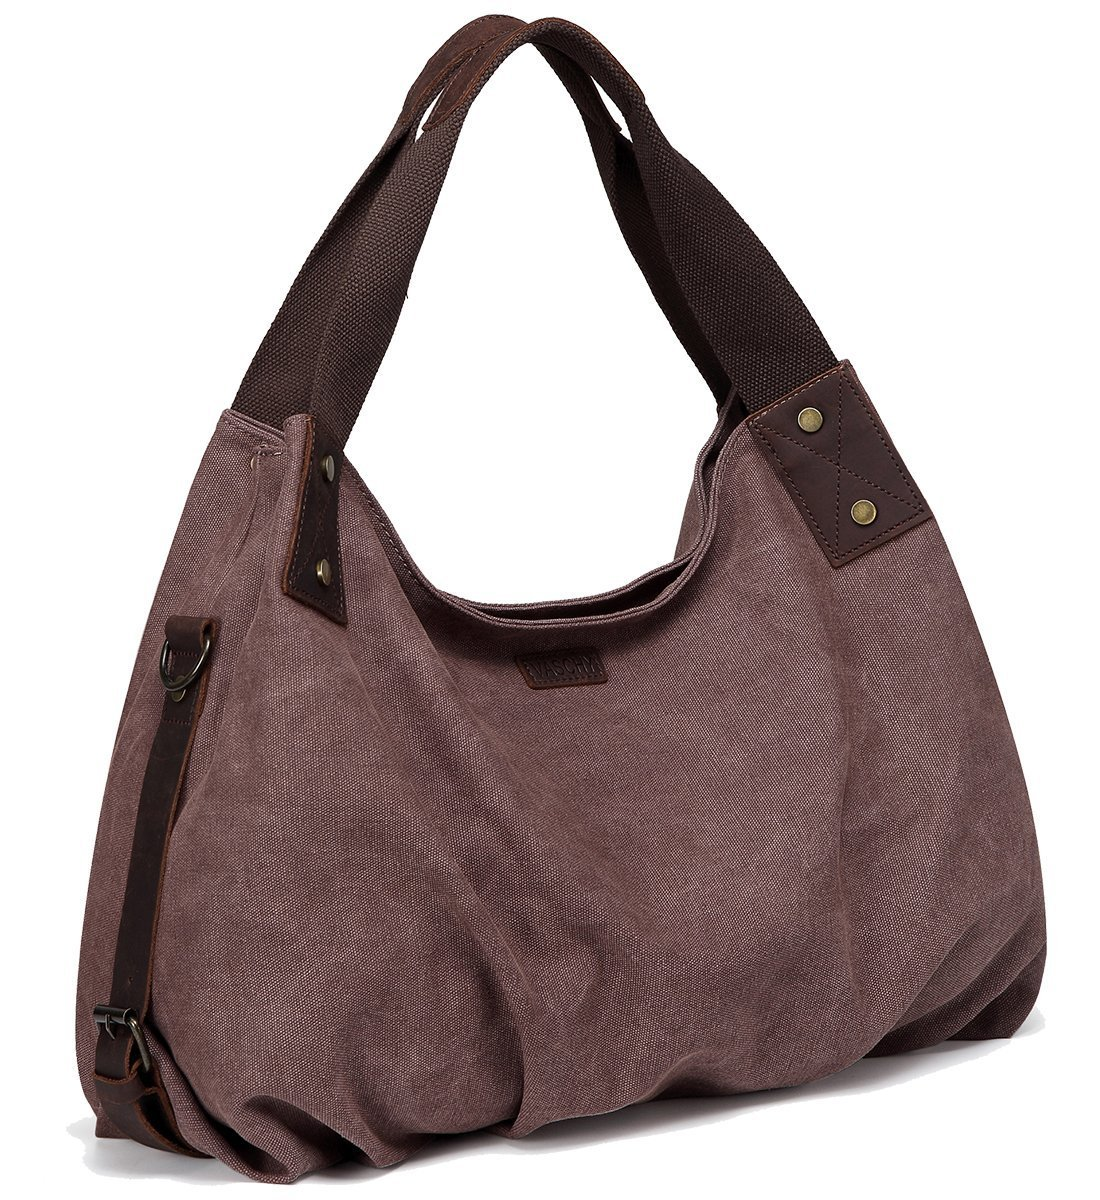 Canvas Hobo Bag,VASCHY Vintage Large Leather Canvas Tote Handbag for Women Top Handle Work Bag Brown with Detachable Shoulder Strap